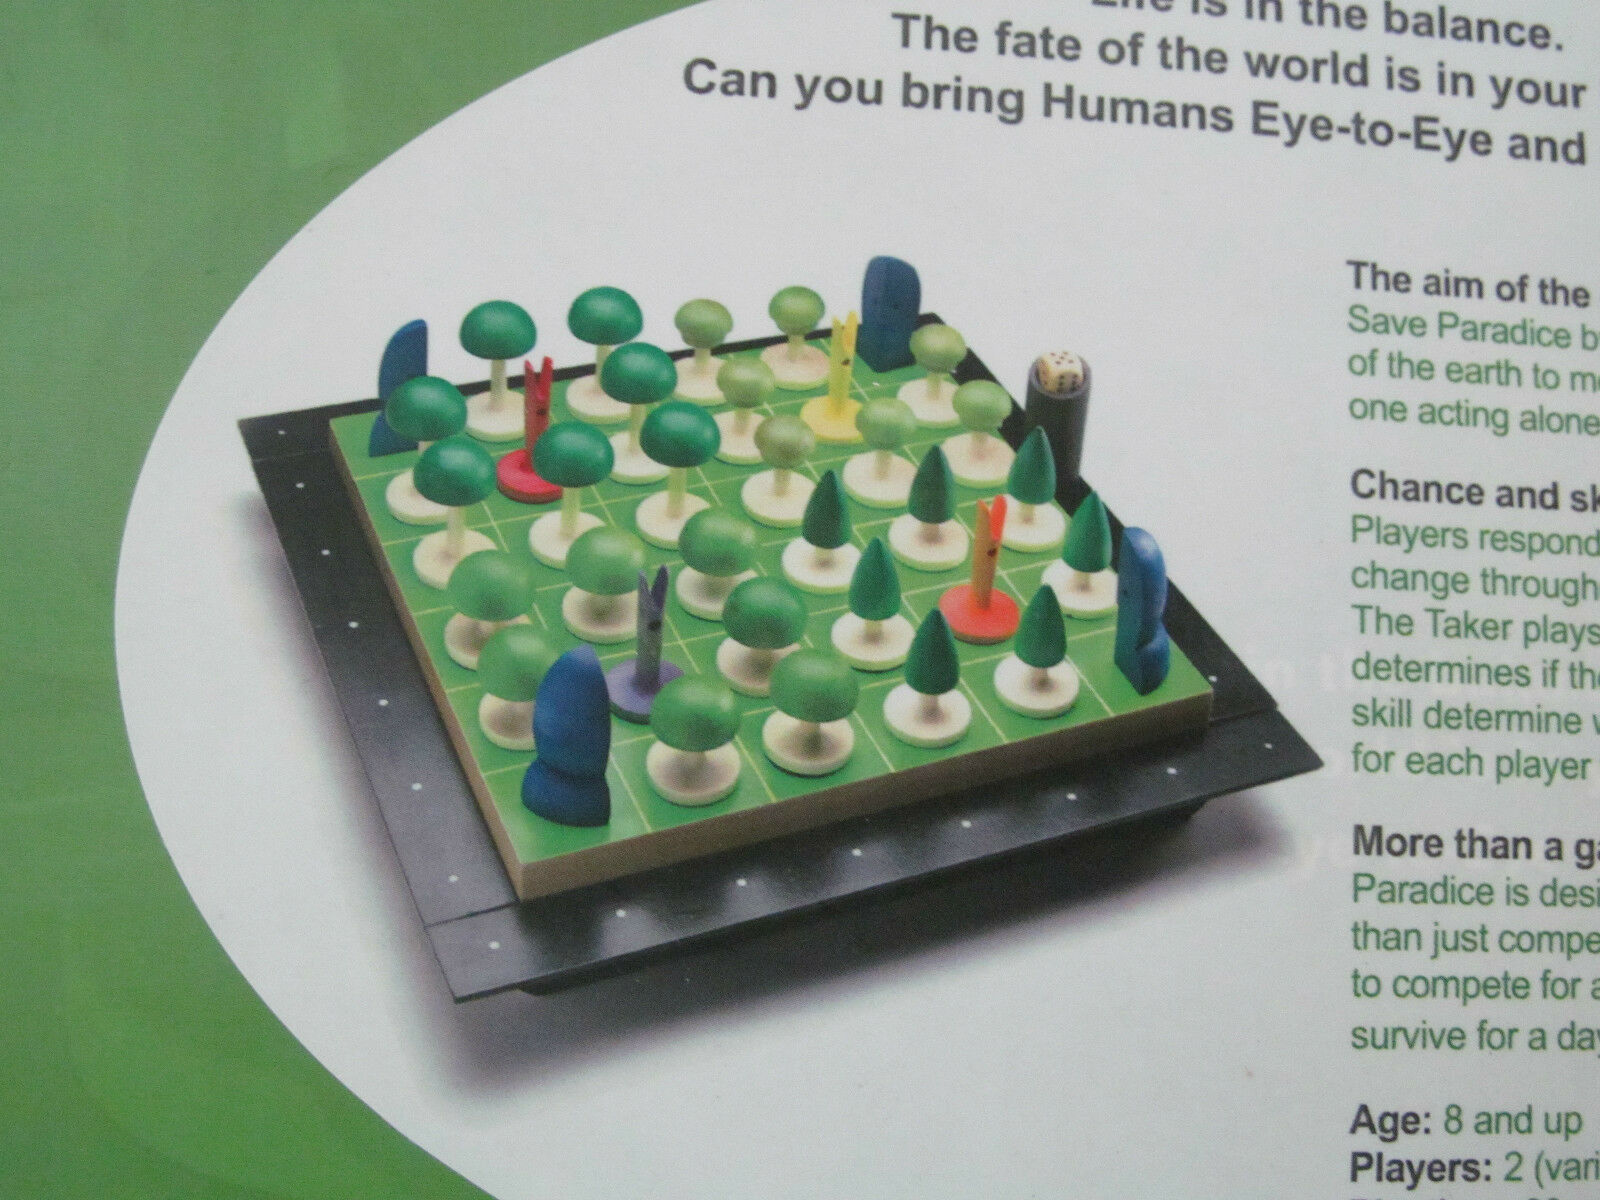 New Paradice Paradice Paradice Board Game by See Through Games for Conscious Living Educational 3a0ad1